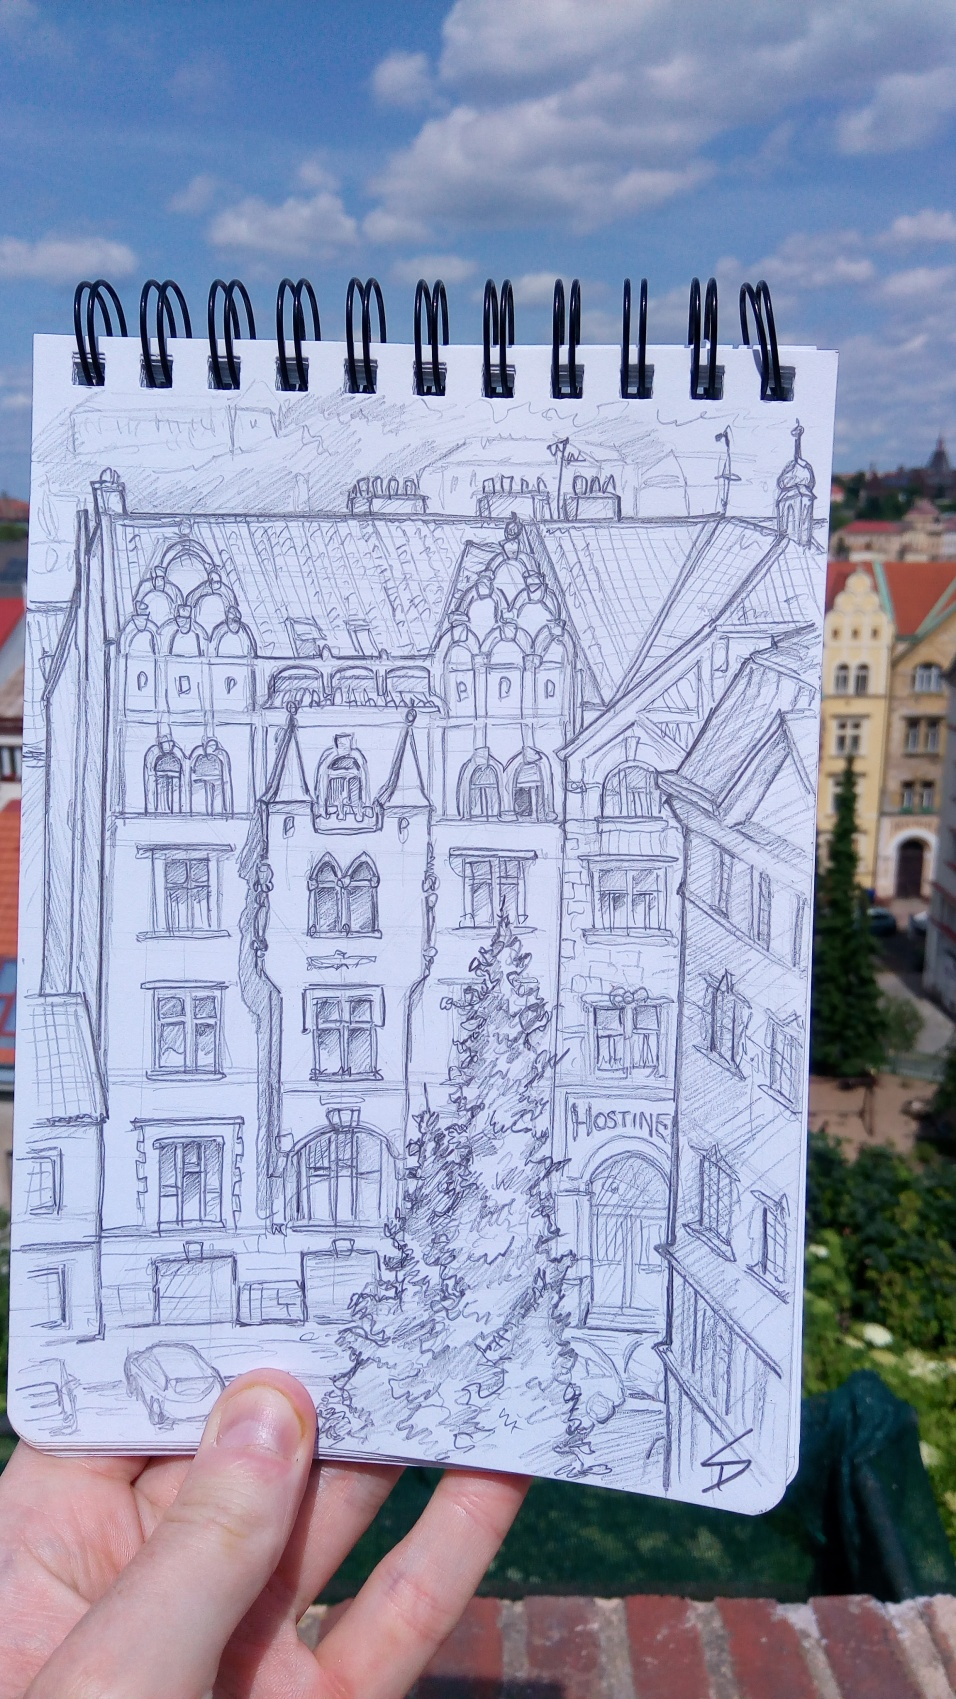 Urban art photo – Vysehrad Castle, Prague, Czech Republic. 'View of Vratislavova from the castle walls.' A stunning castle in Prague, and thankfully lesser known than its famous counterpart on the west bank of the Vltava river. sketchbookexplorer.com @davidasutton @sketchbookexplorer Facebook.com/davidanthonysutton #sketch #drawing #art #prague #vysehrad #castle #praha #travel #travelblog #czechrepublic